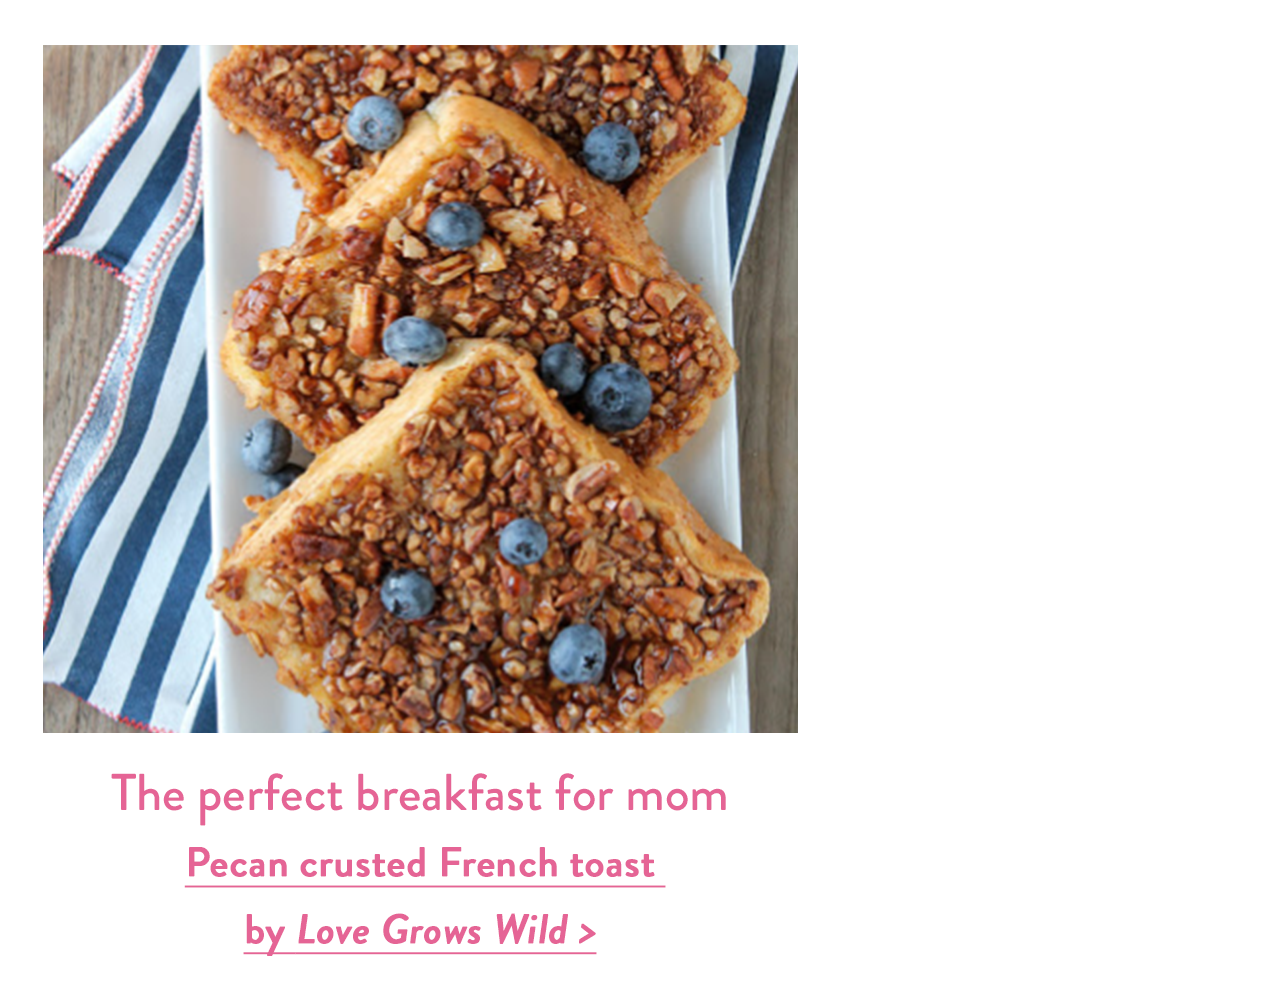 The perfect breakfast for mom